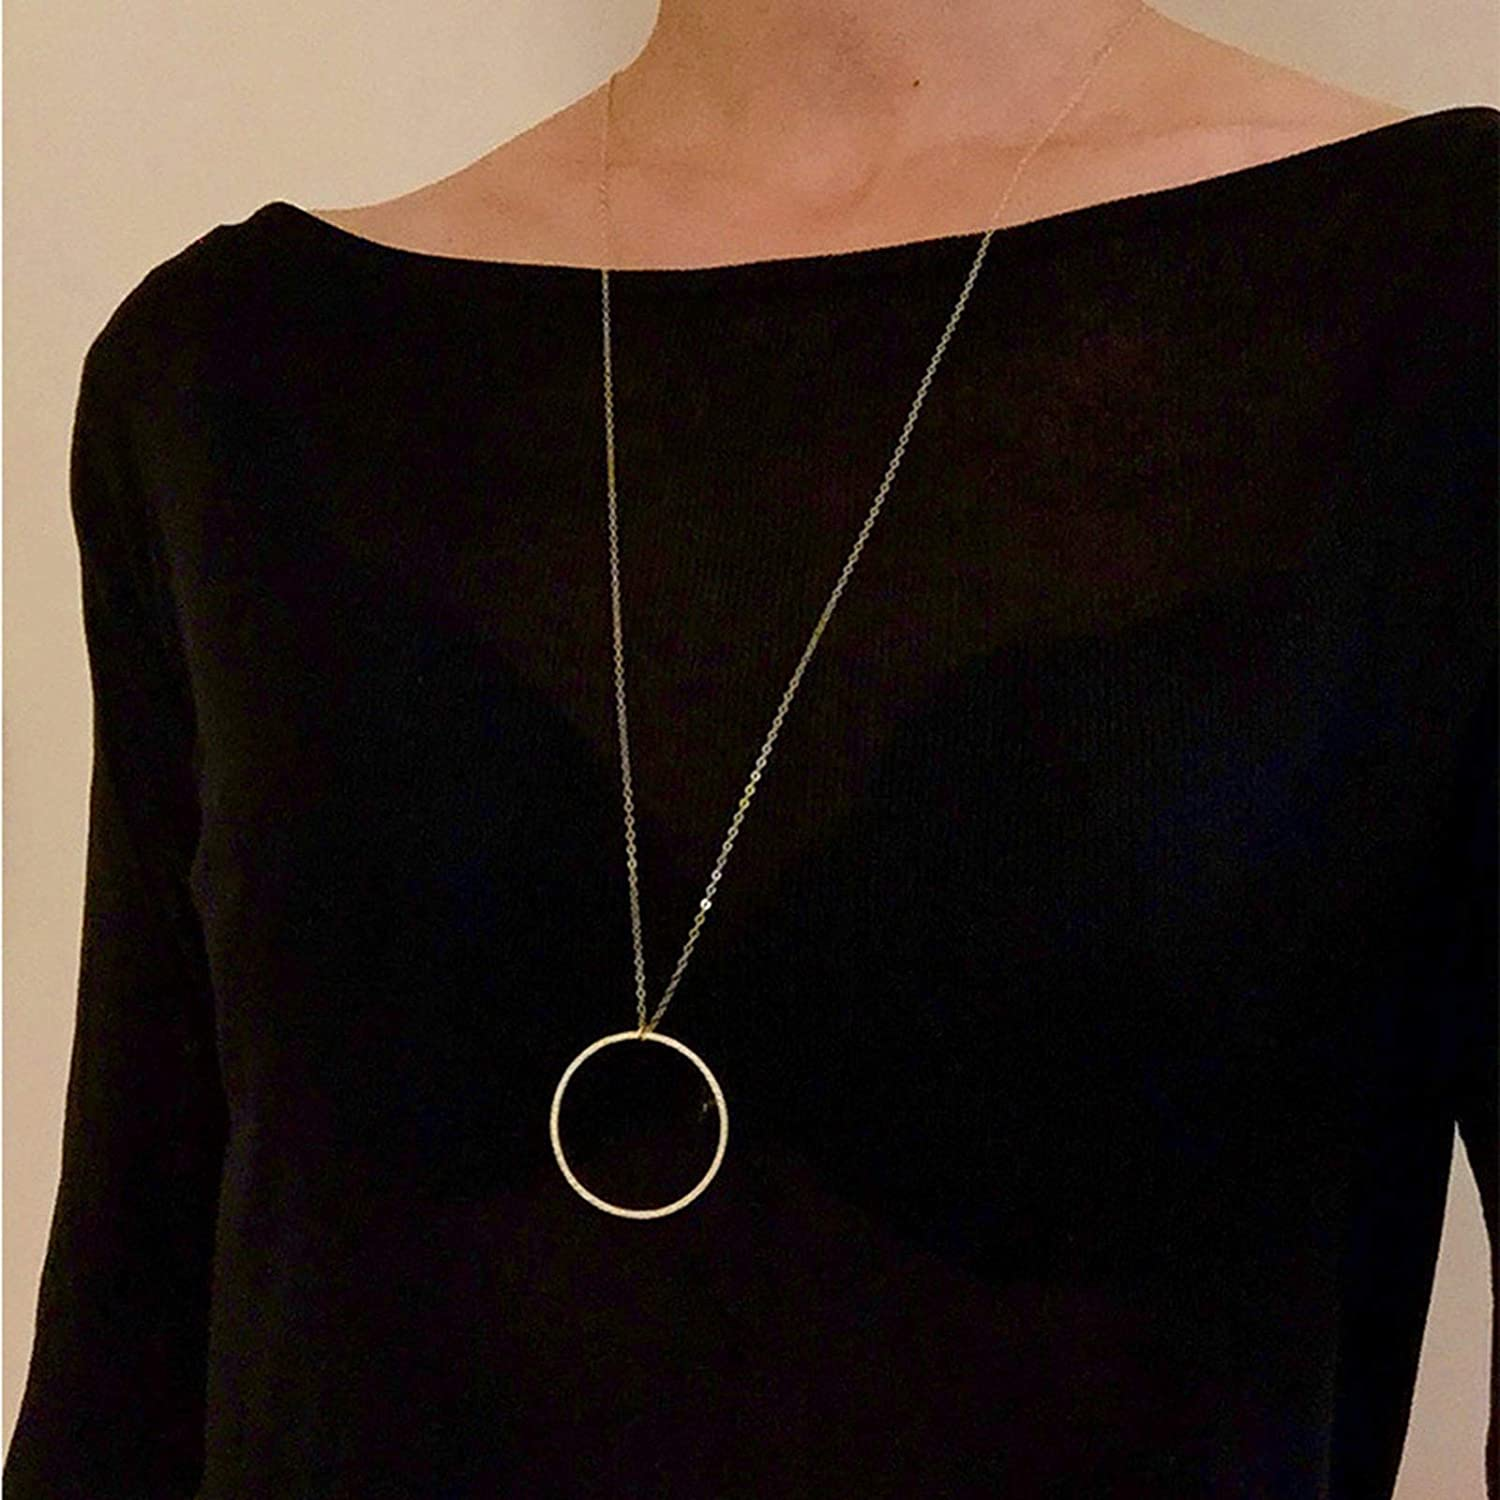 Larancie Boho Necklace Simple Hollow Round Pendant Necklace Long Chain Necklace Jewelry for women and Girls (Gold)